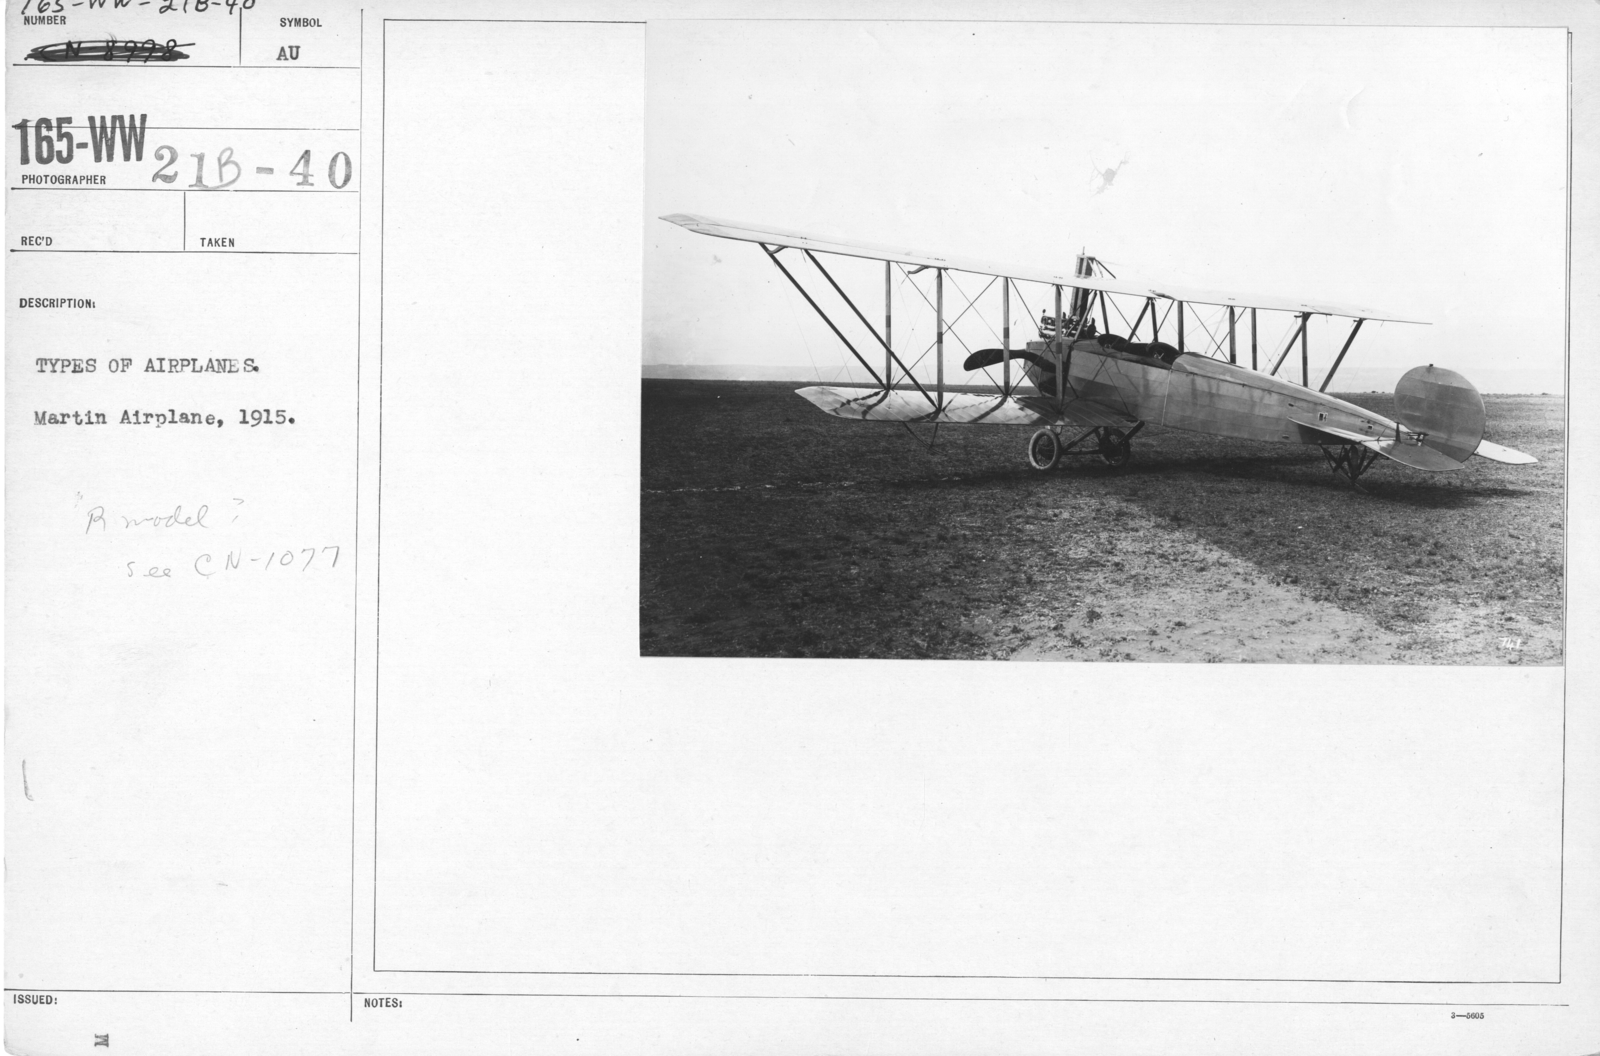 Airplanes - Types - Types of airplanes. Martin Airplane, 1915. R Model